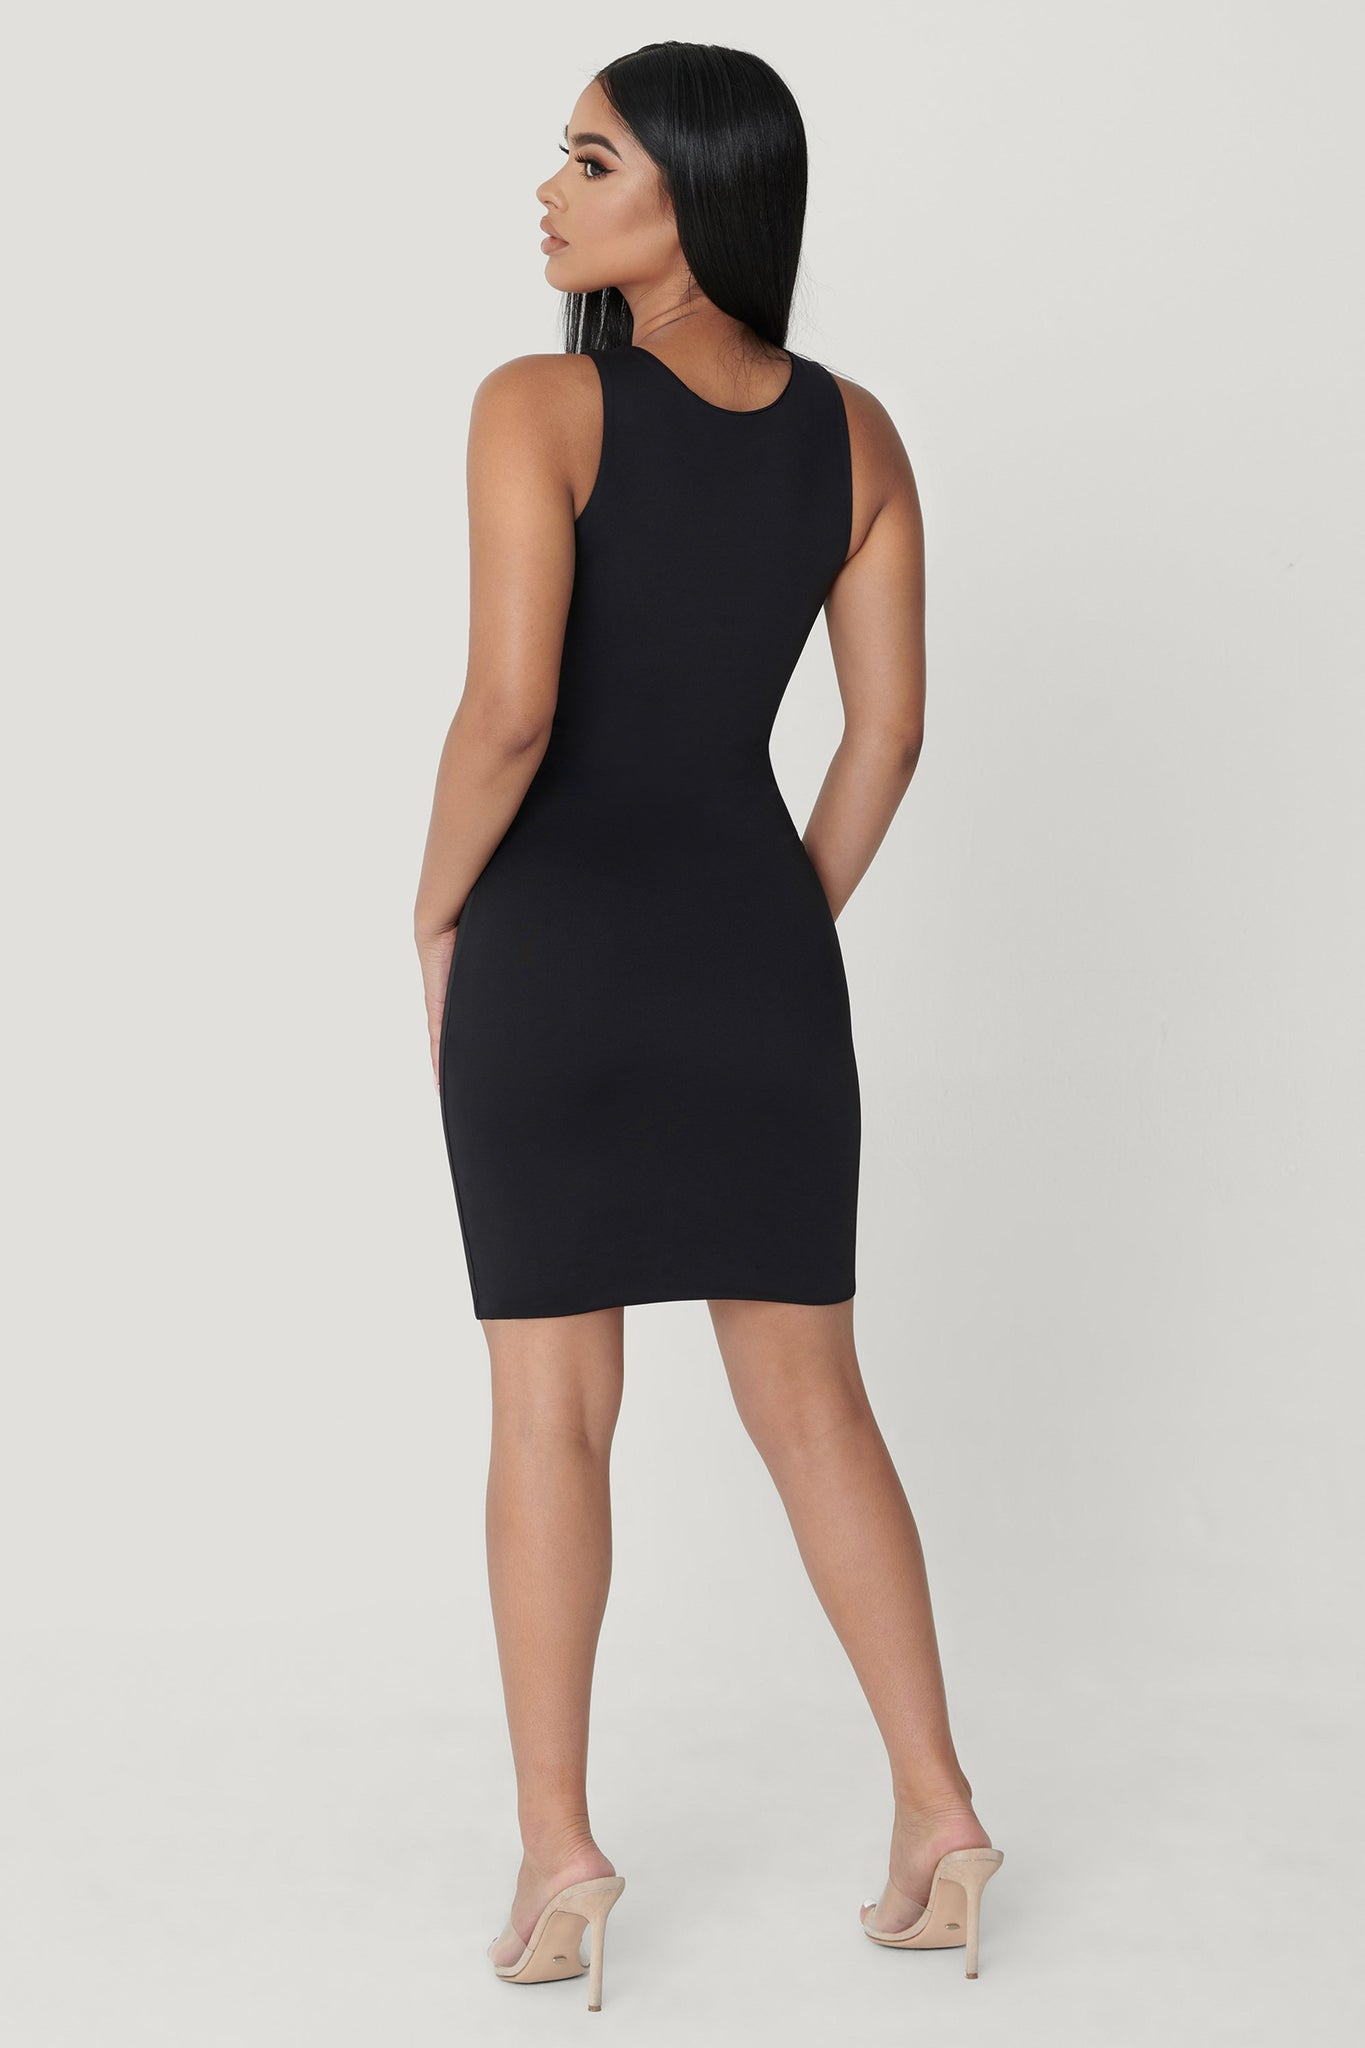 Tonia High Neck Sleeveless Dress - Black - MESHKI